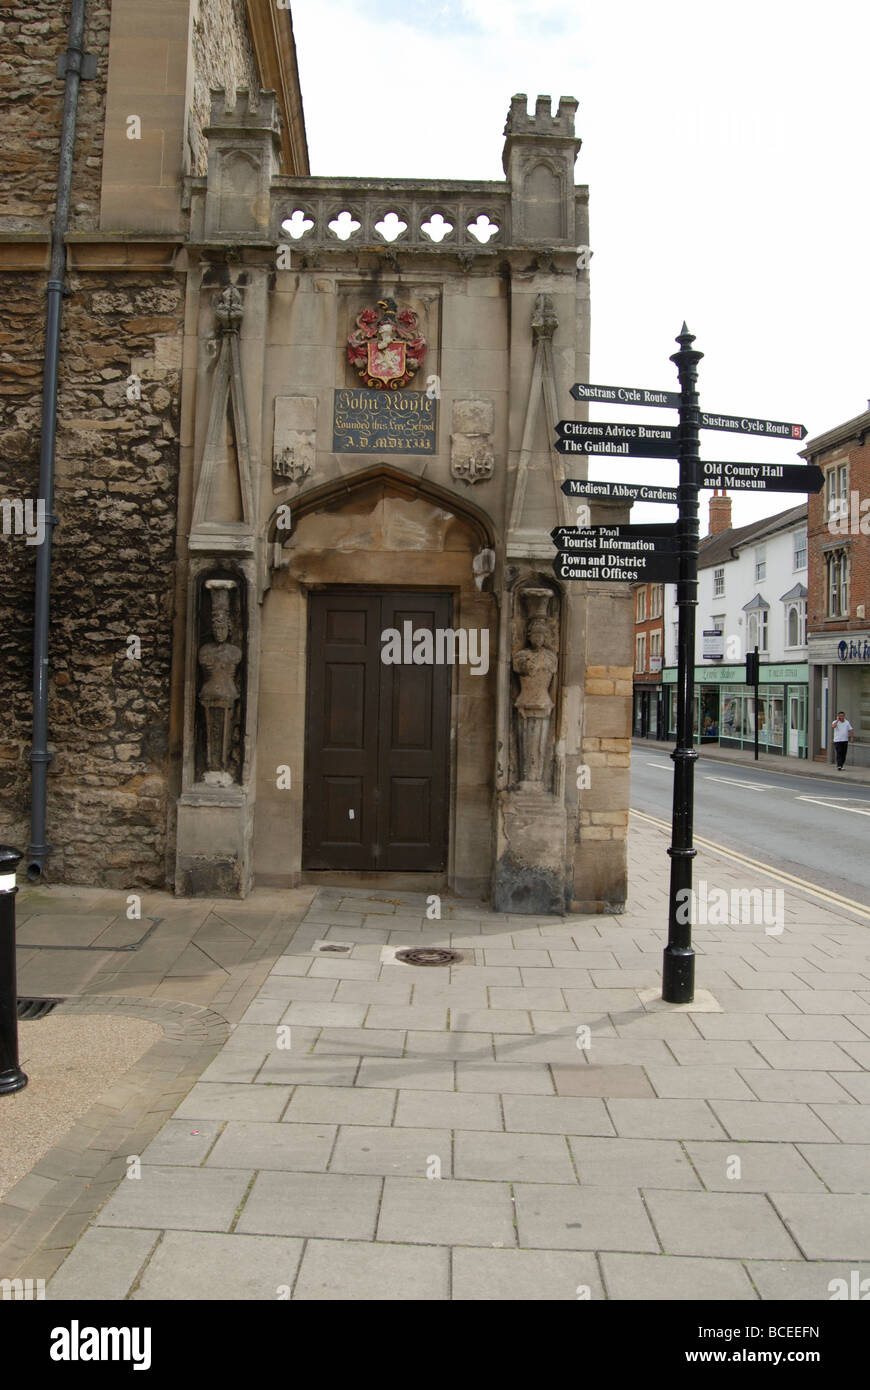 Streetsign guiding tourists to places of interest in the historic market town of Abingdon in Oxfordshire - Stock Image